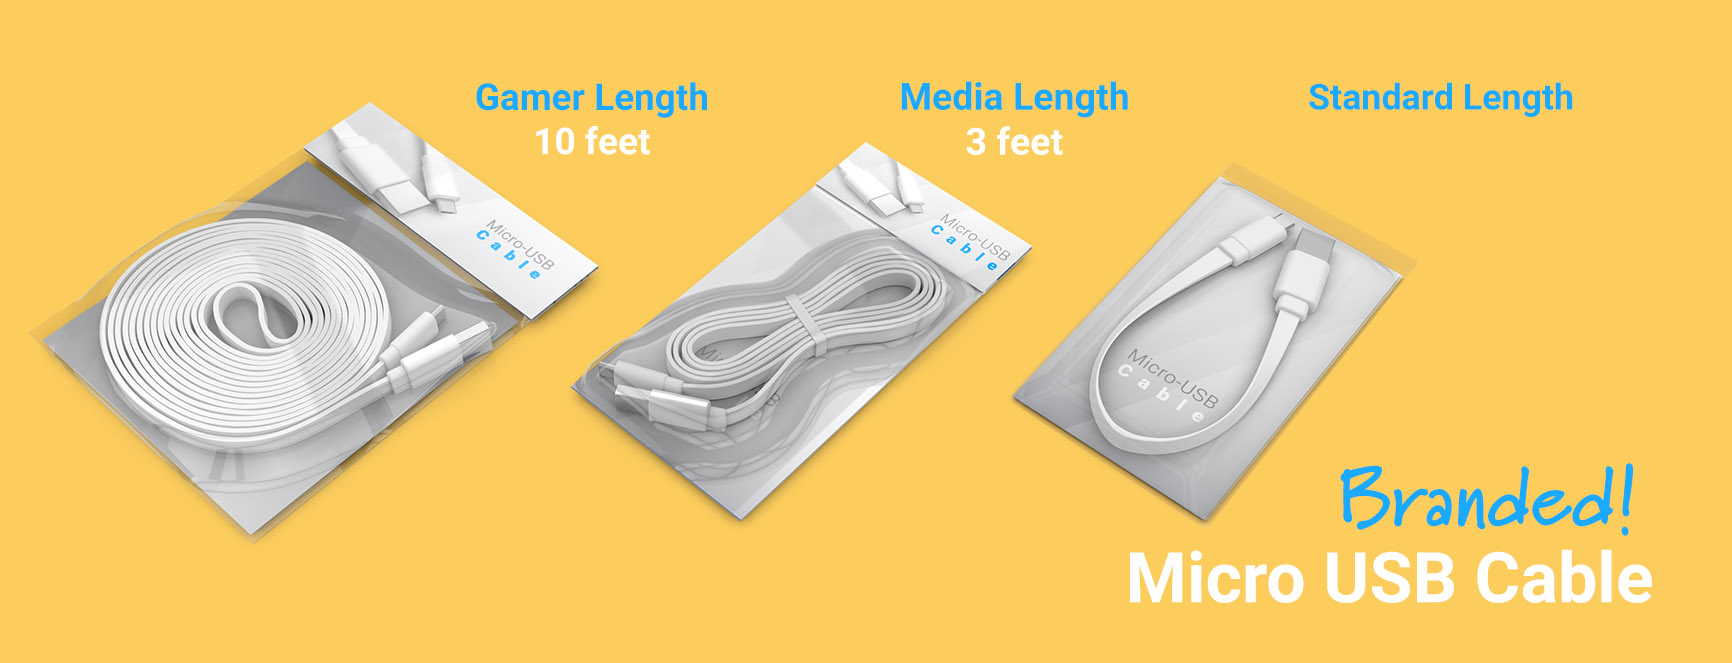 Branded Cable Packaging